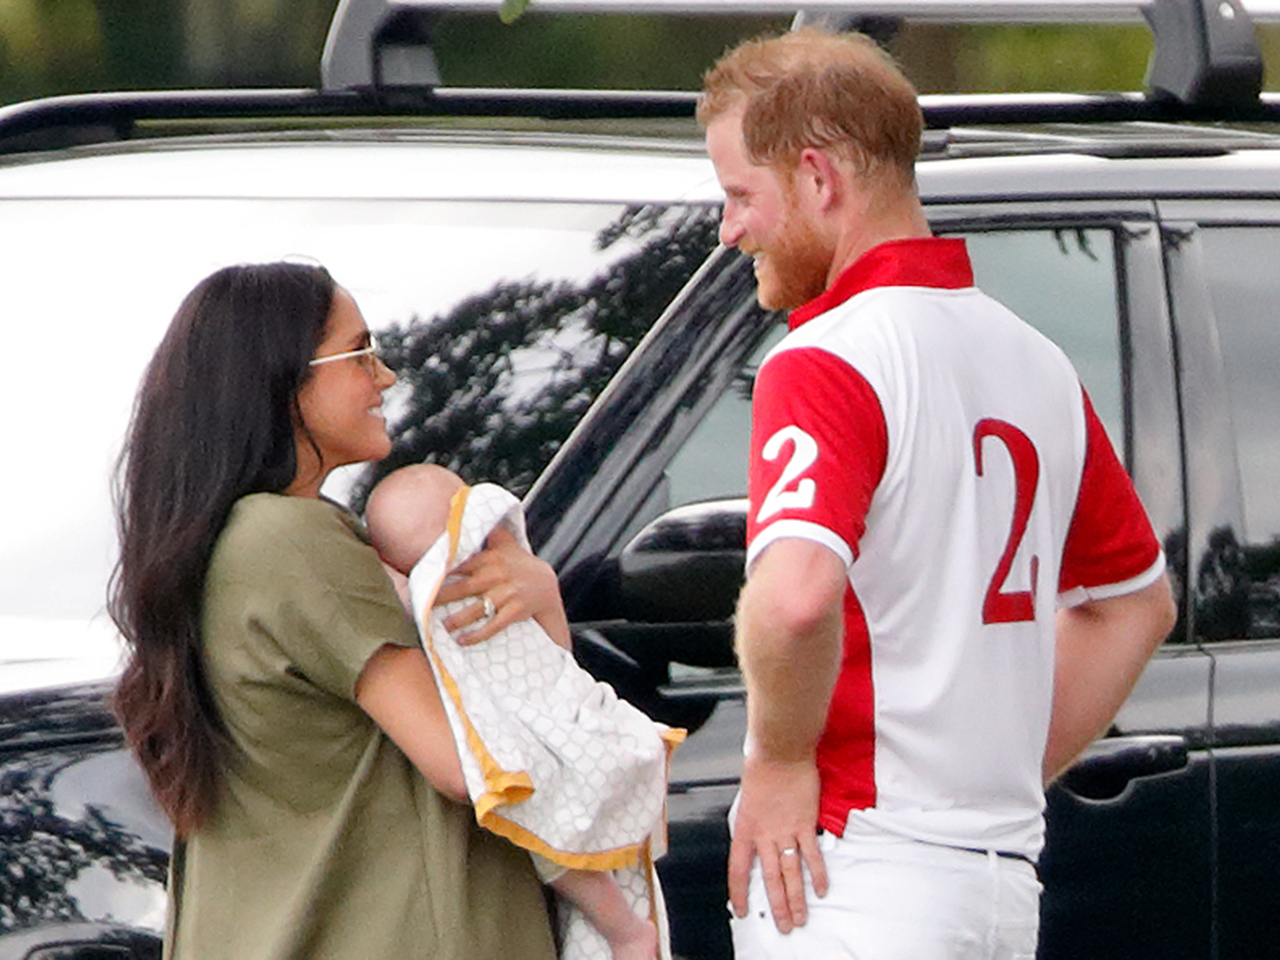 prince harry and meghan spilled details on their 11 hour flight with baby archie prince harry and meghan spilled details